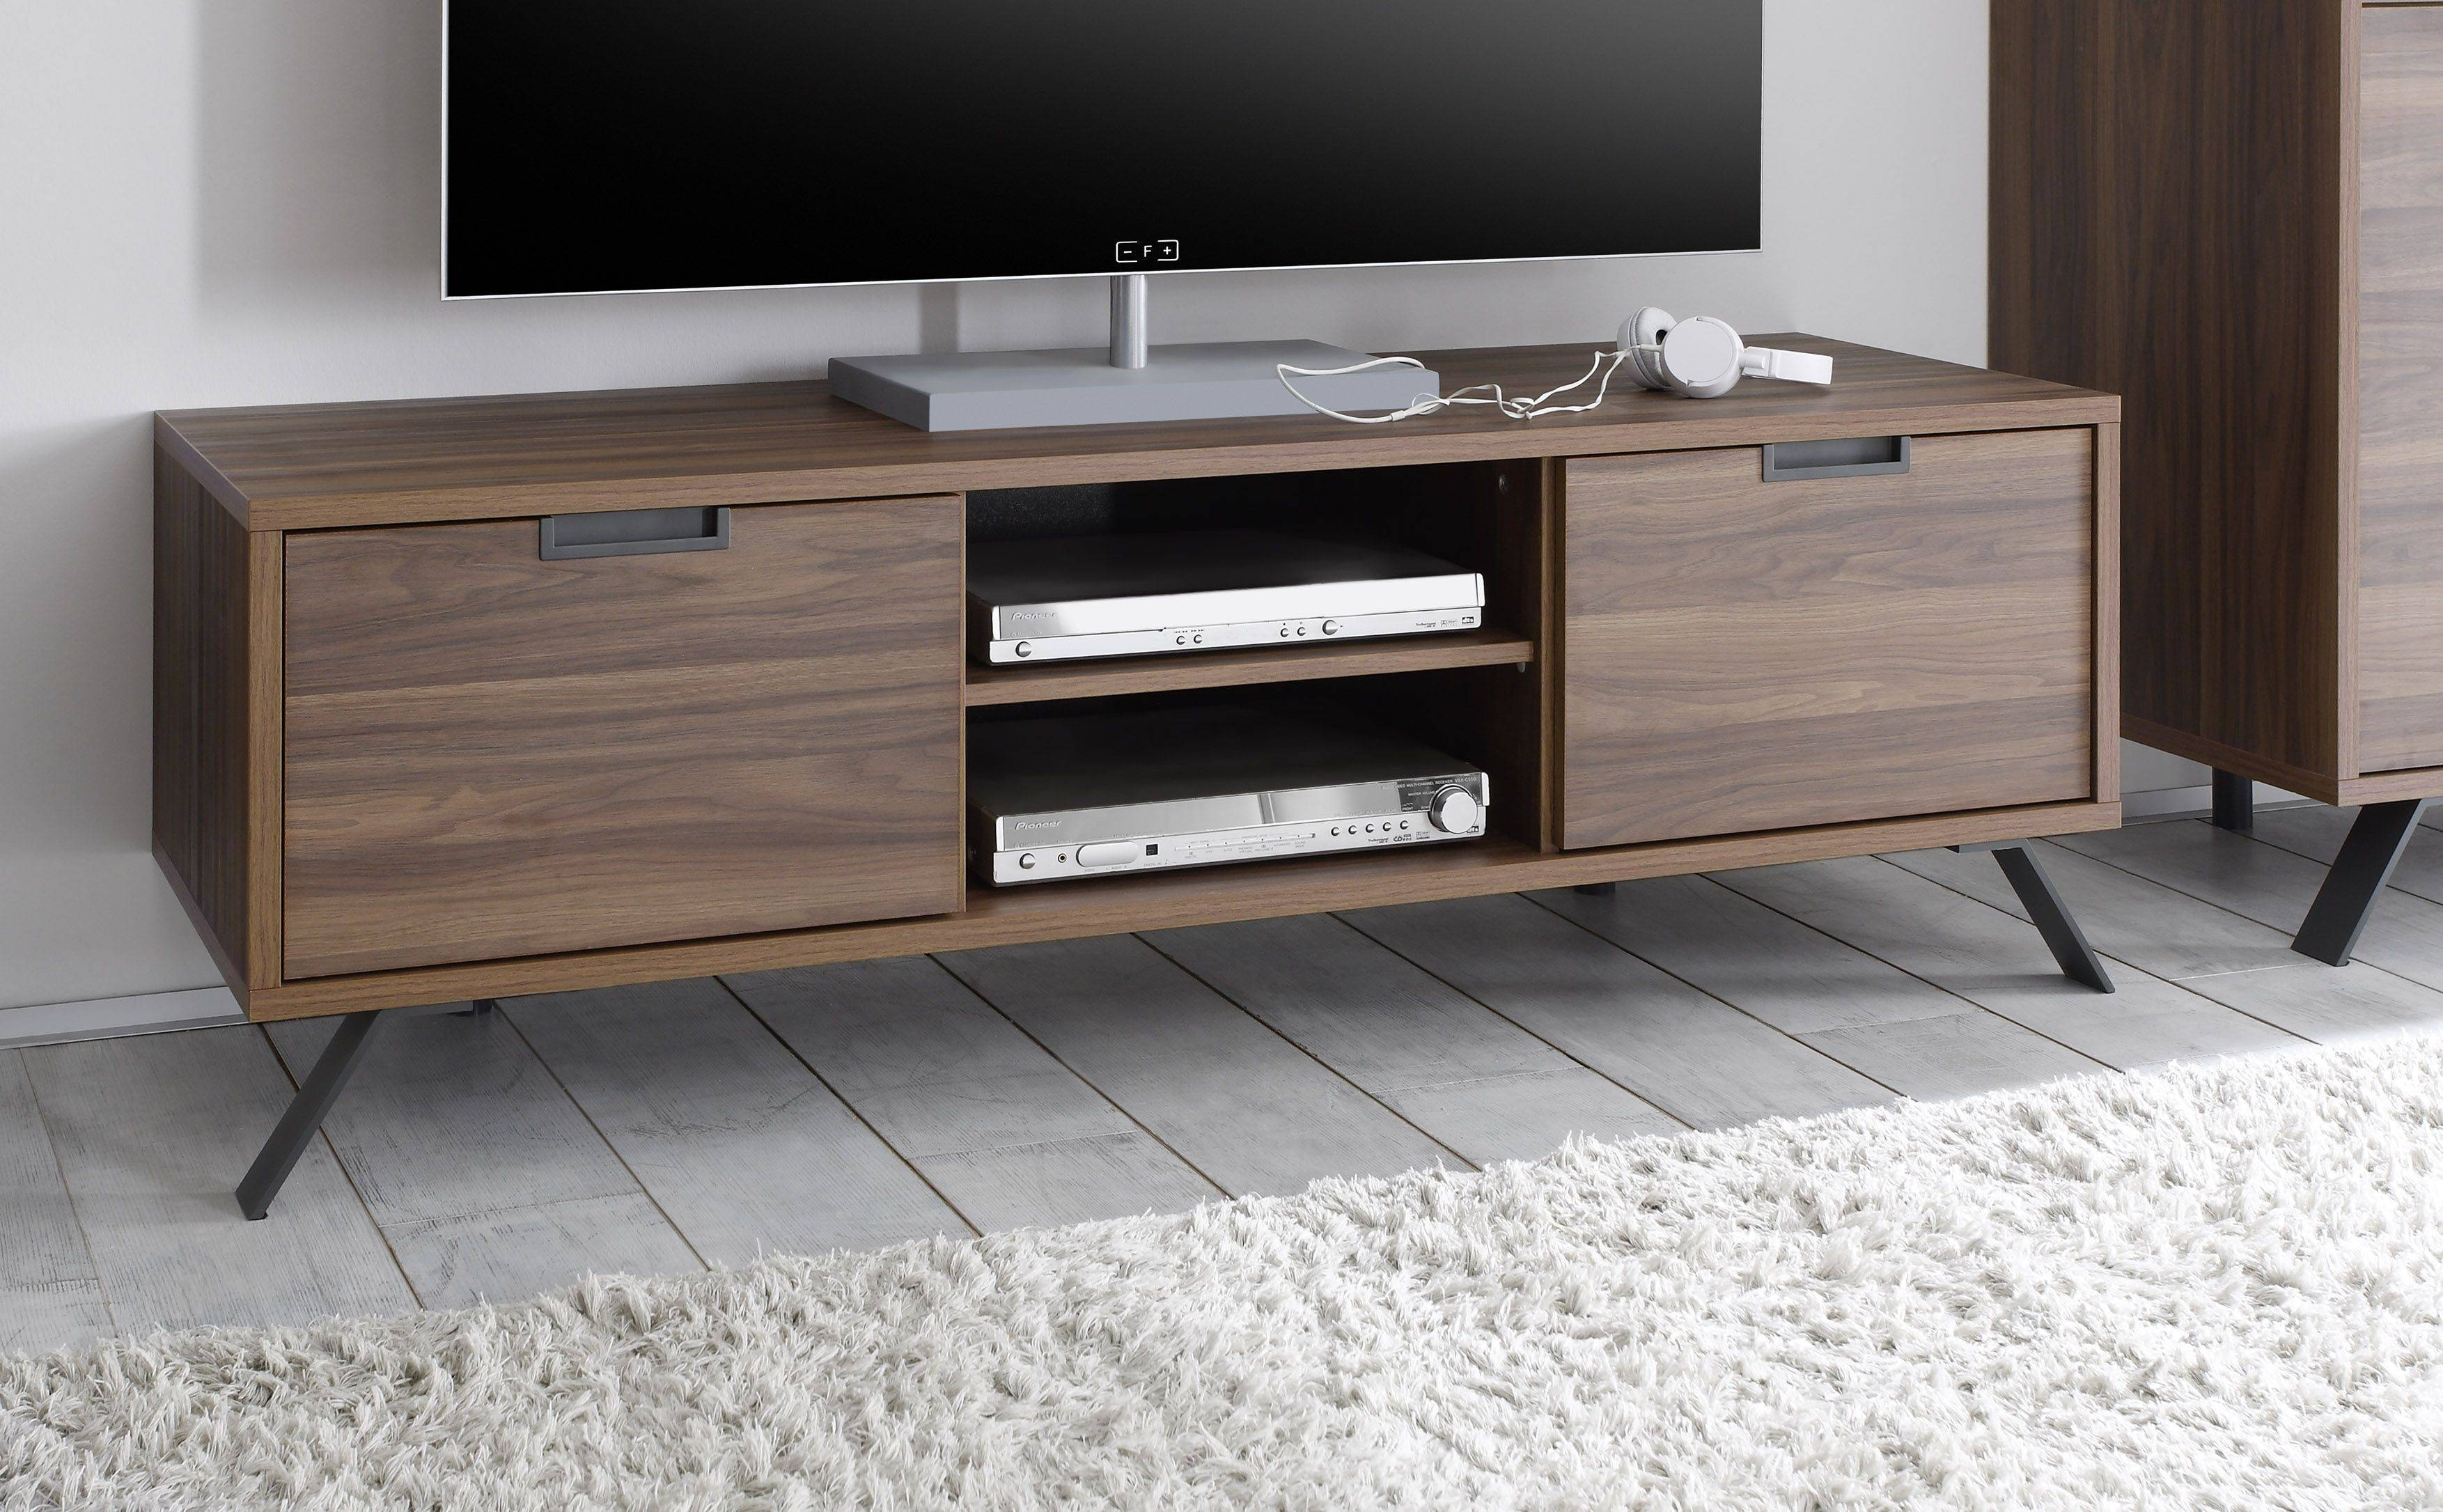 Palma Tv Stand, Walnut Buy Online At Best Price – Sohomod With Regard To Walnut Tv Stands (View 3 of 15)